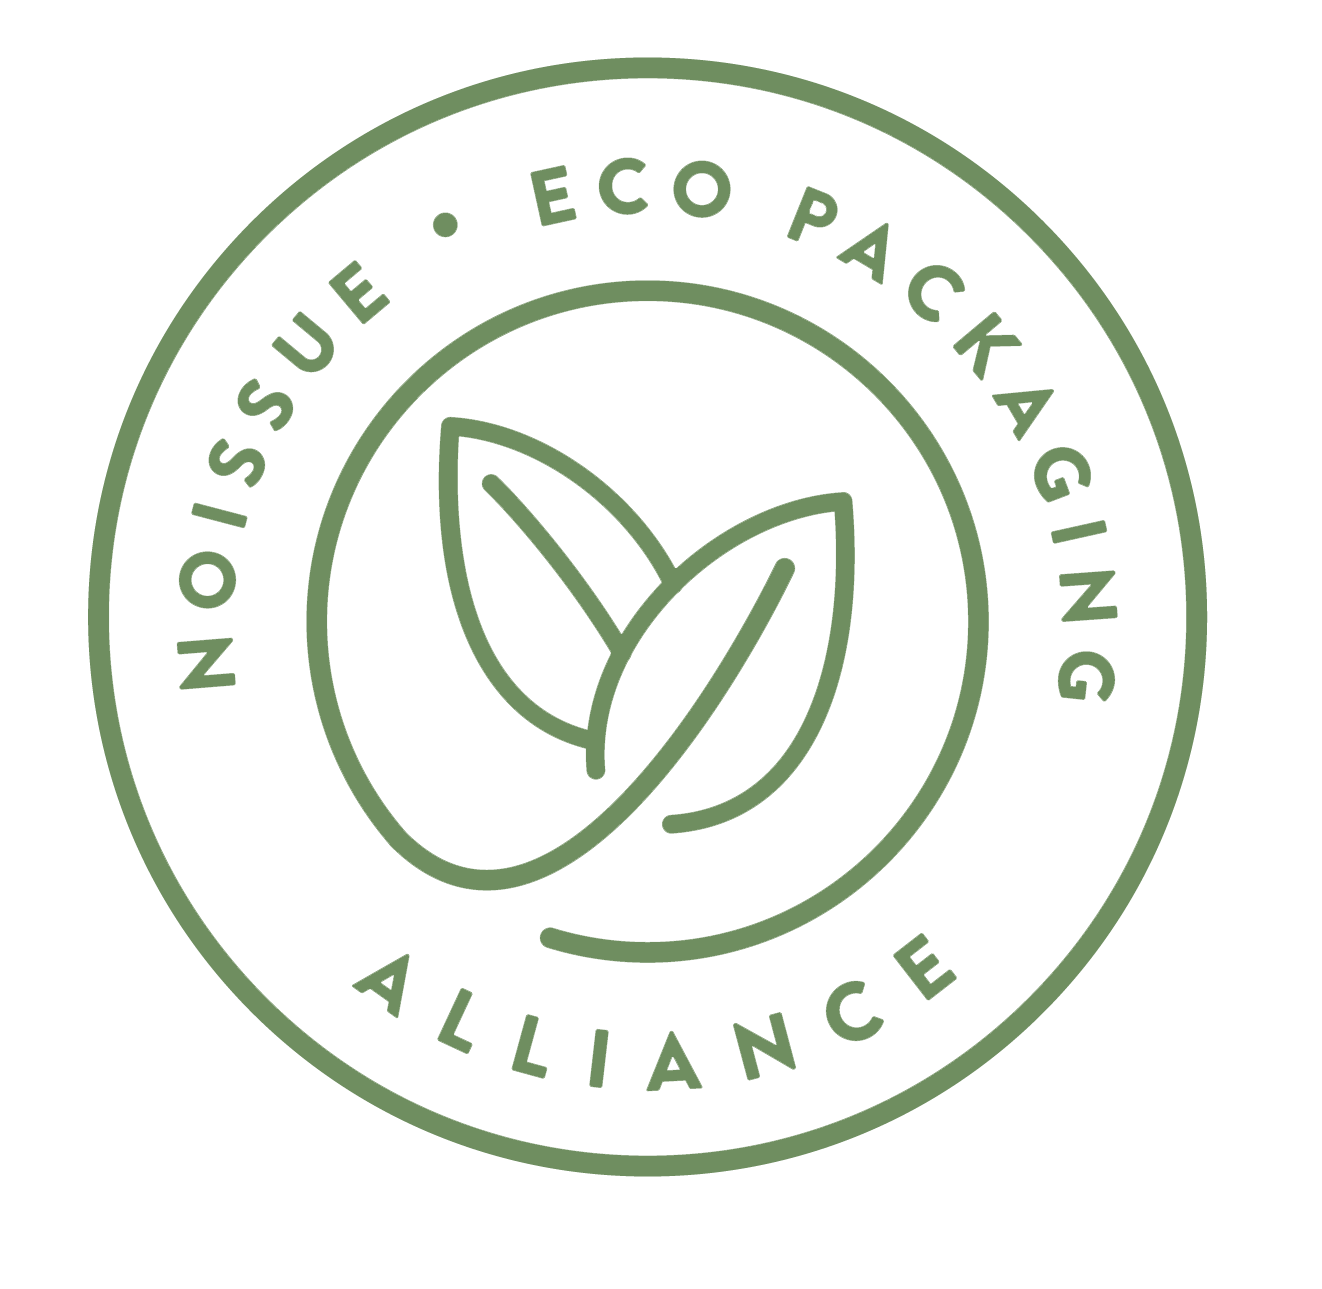 ECO-PACKAGINGWe use recyclable, soy ink, tissue paper and stickers. With every order, our vendor plants a tree in areas of need. - NO ISSUE HAS PLANTED 4,624 TREES WORLDWIDE.